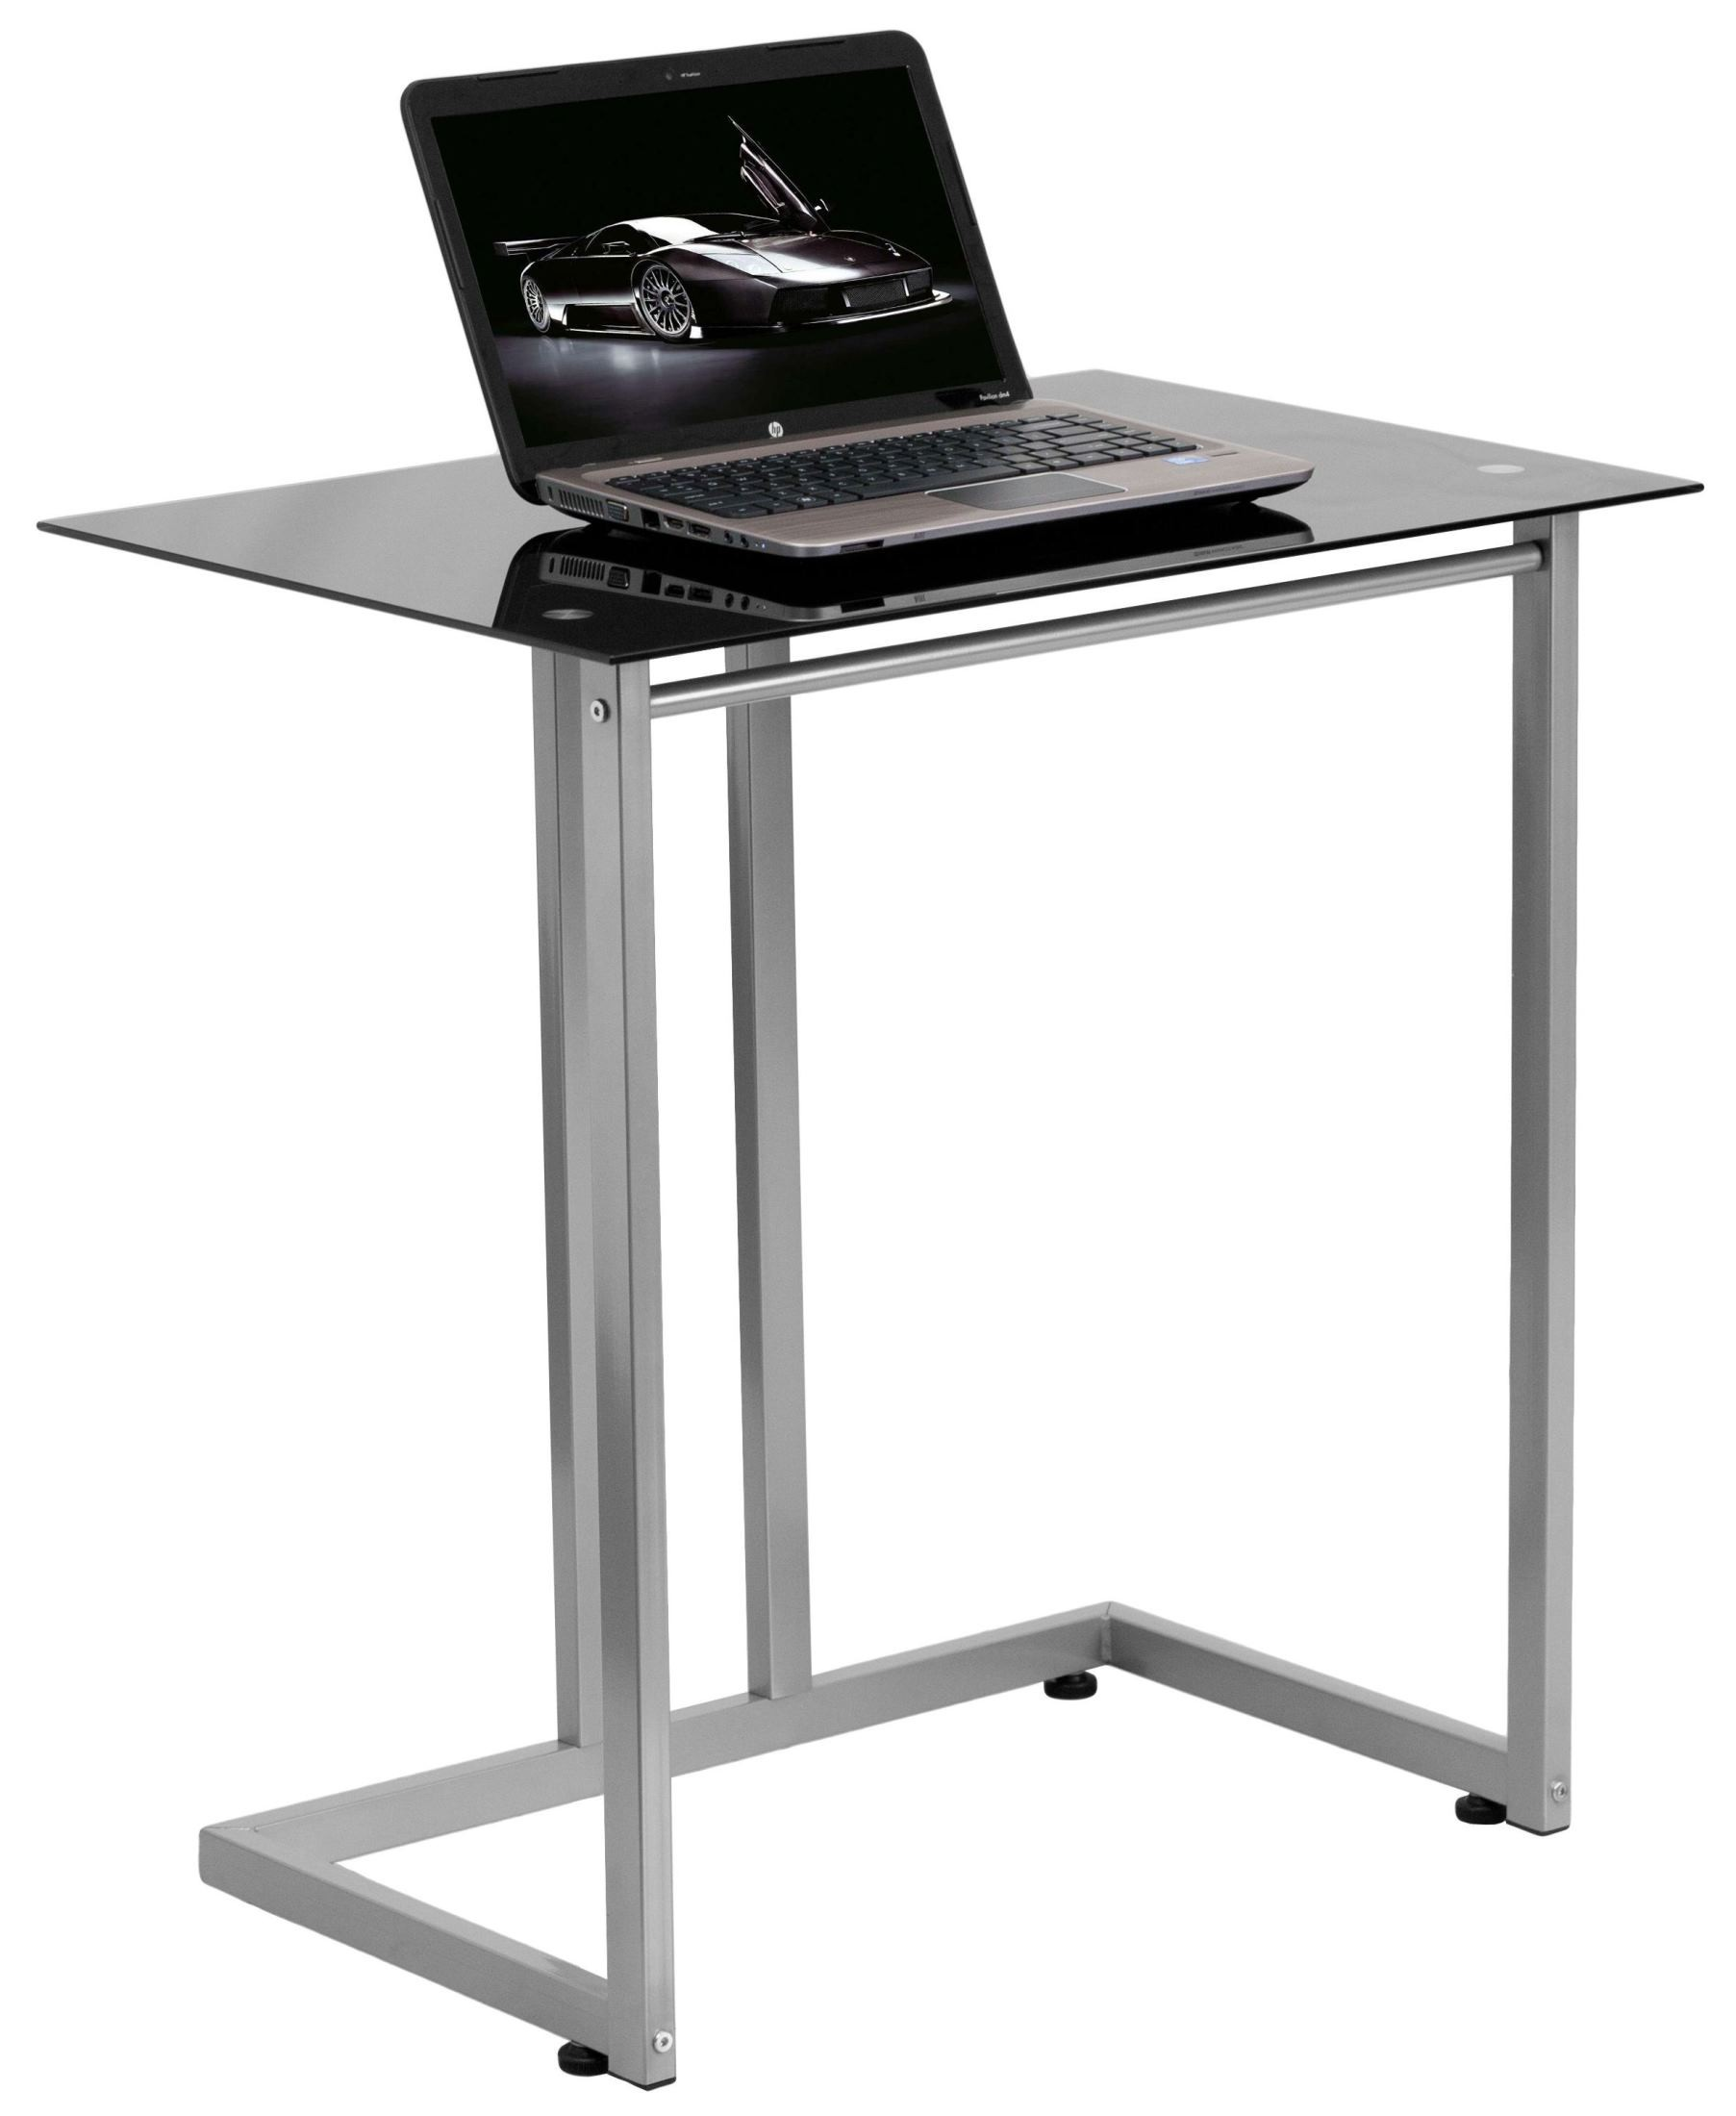 Black Tempered Glass Top Computer Desk from Renegade